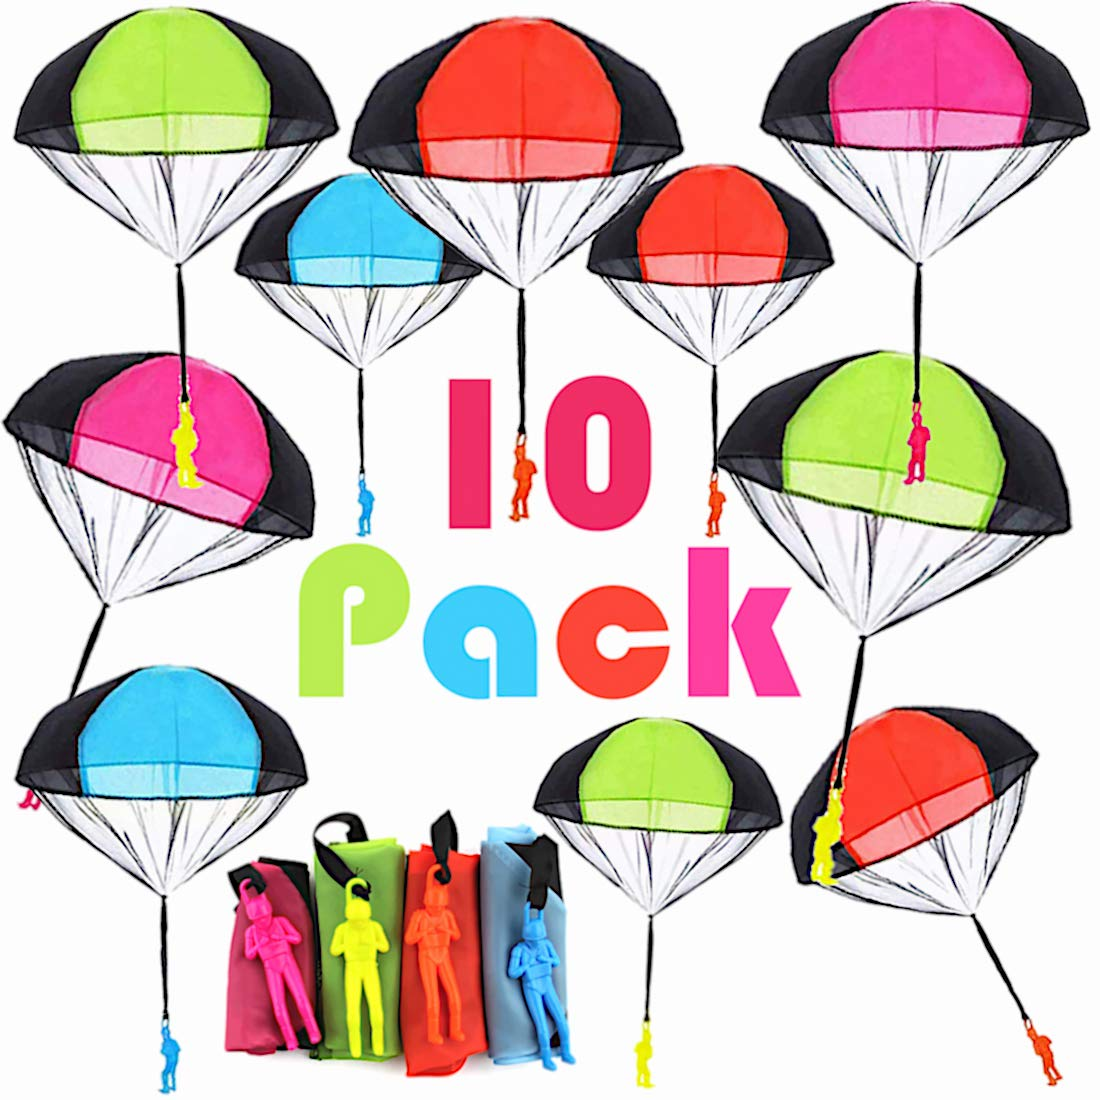 Kvvdi 10 Pcs Kids Plastic Parachute Army Man Toy Soldier, Mini Army Paratrooper Tangle Free Parachute Guy Toy, Kids Parachute Paratrooper Toy Soldier Action Figure for Outdoor Children Flying Toys by Kvvdi